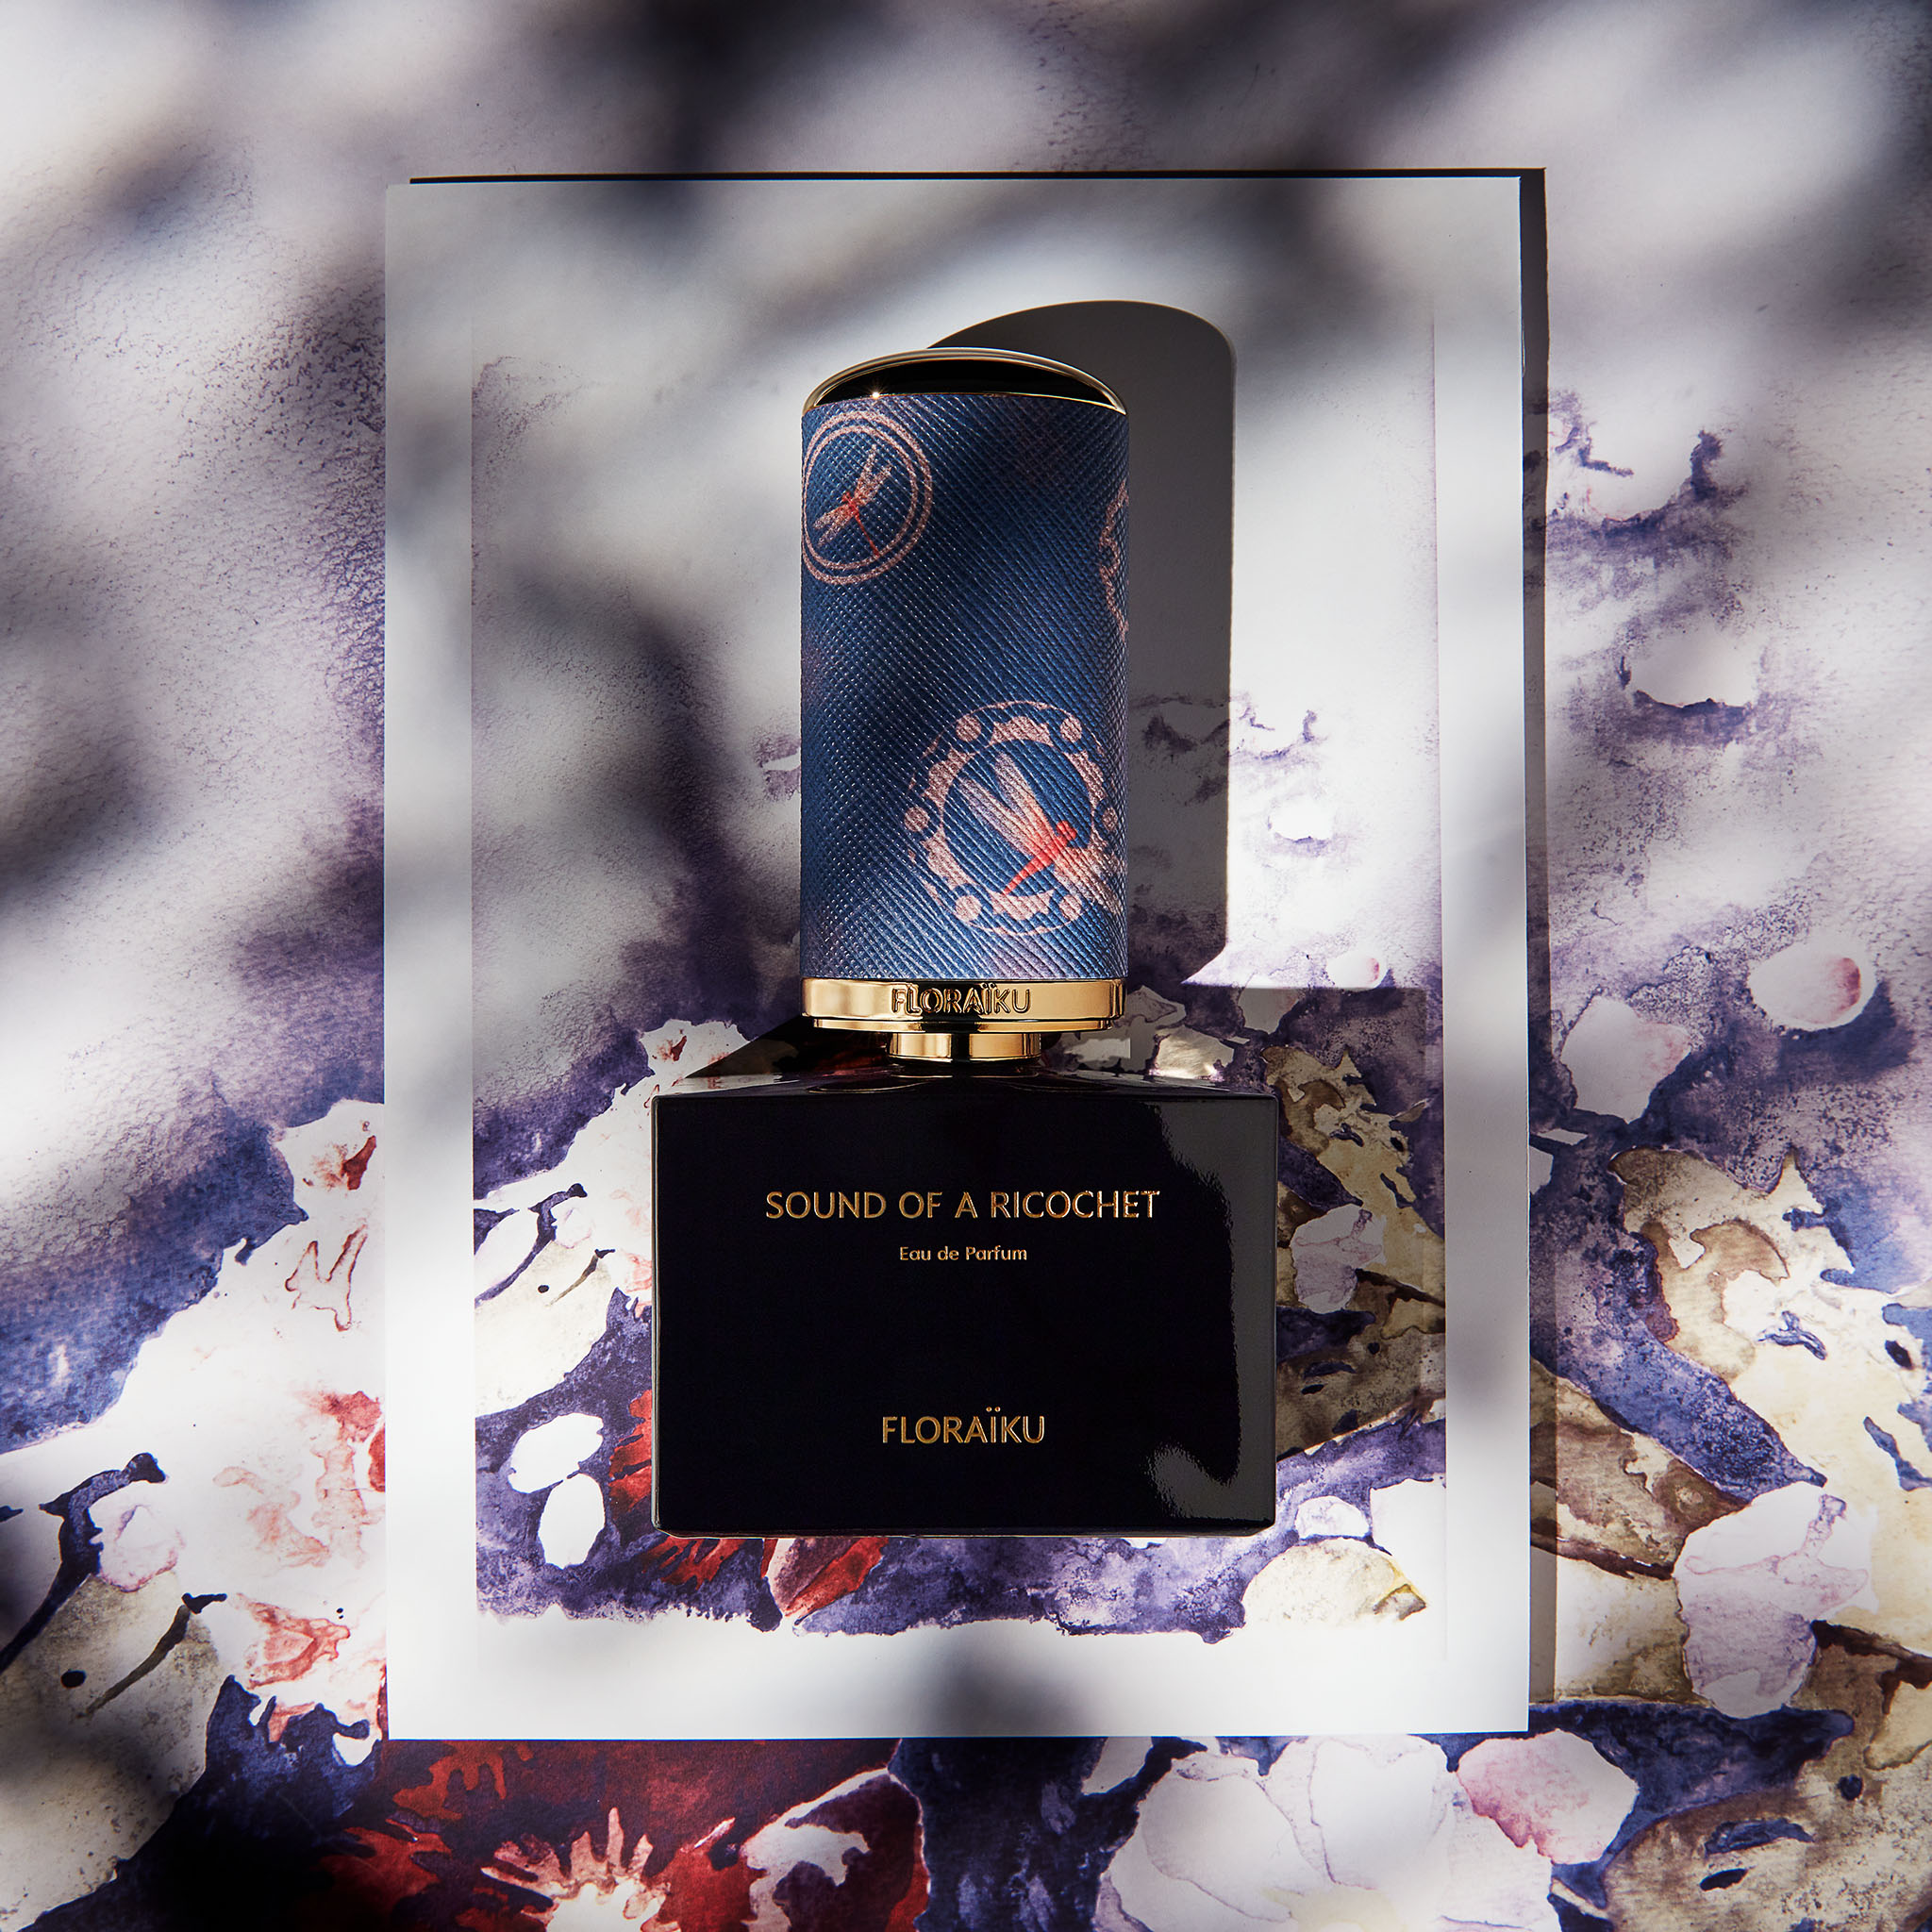 FLORAÏKU Brand Content. Parfum Japon Instagram Photos Sound of a Ricochet